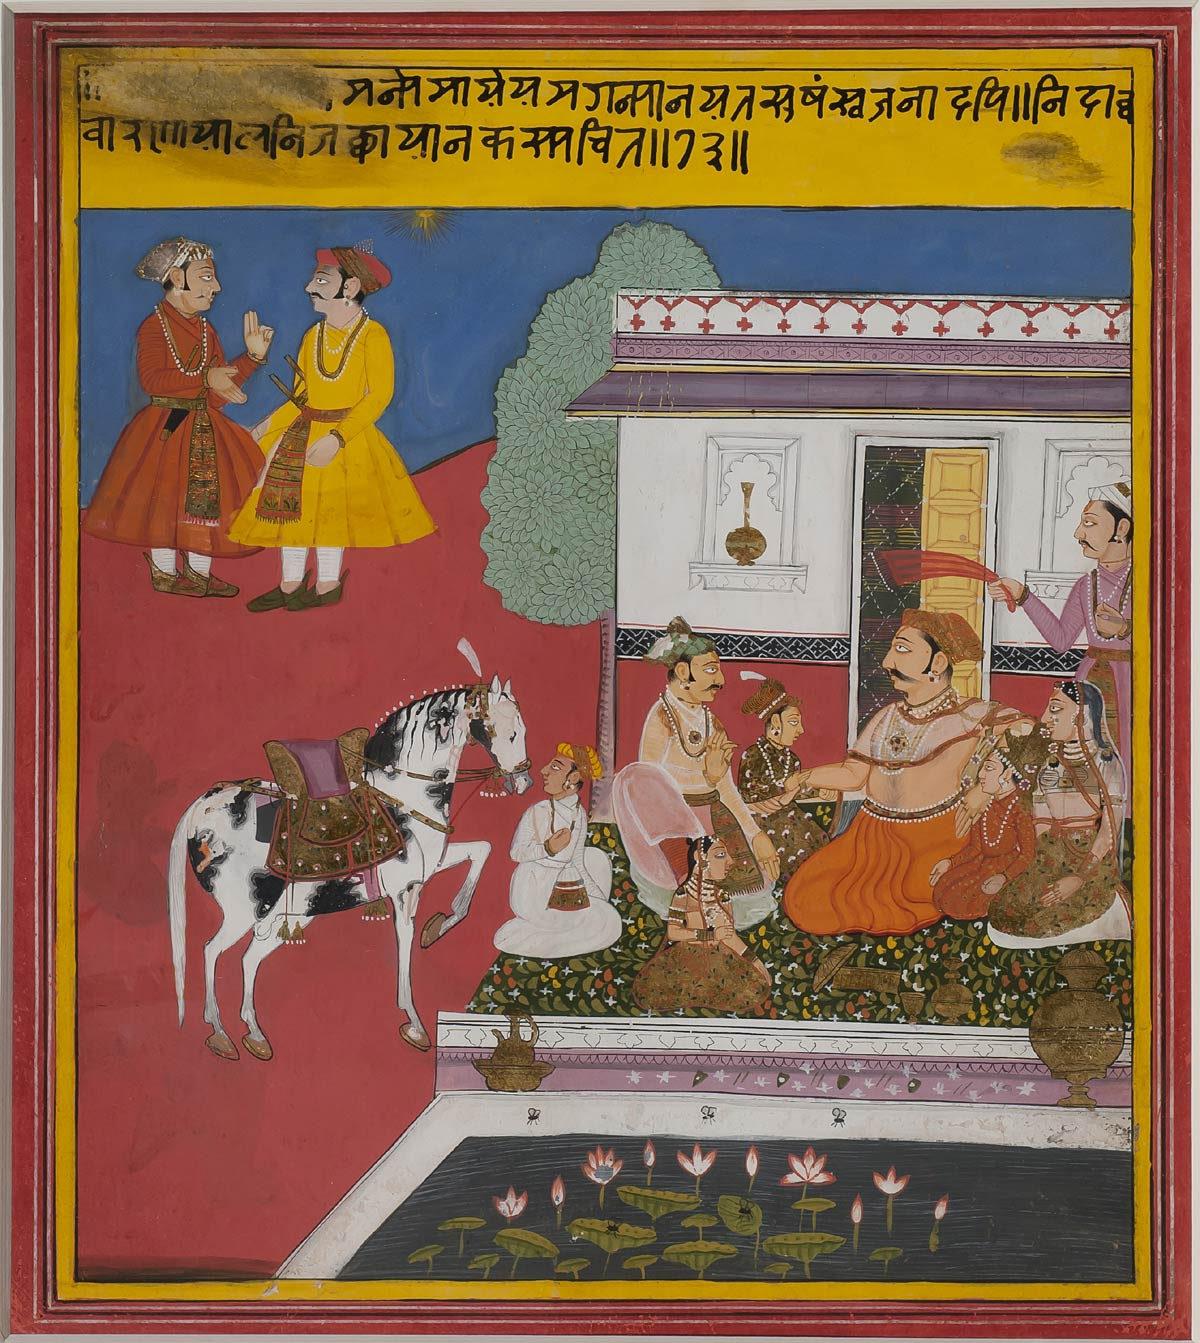 Illustration from a Poetic Album, Anonymous Mewar Artist, Circa 1700, Opaque watercolour heightened with gold on paper, Image 25 x 21cms, Folio 28 x 25 cms